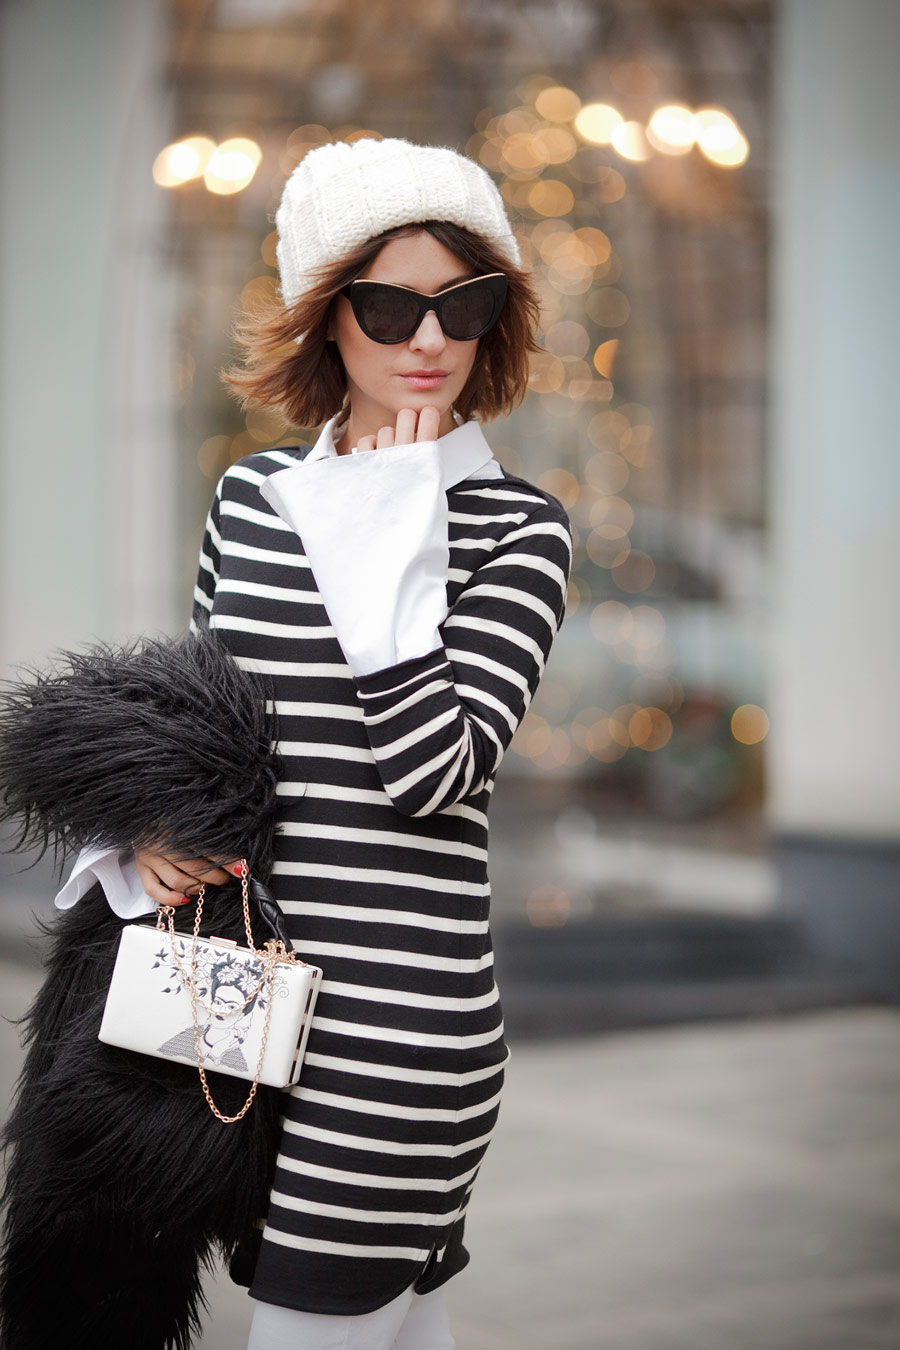 stripe knitted dress, winter outfits, winter outfit ideas, Ellena Galant, Елена Галант,